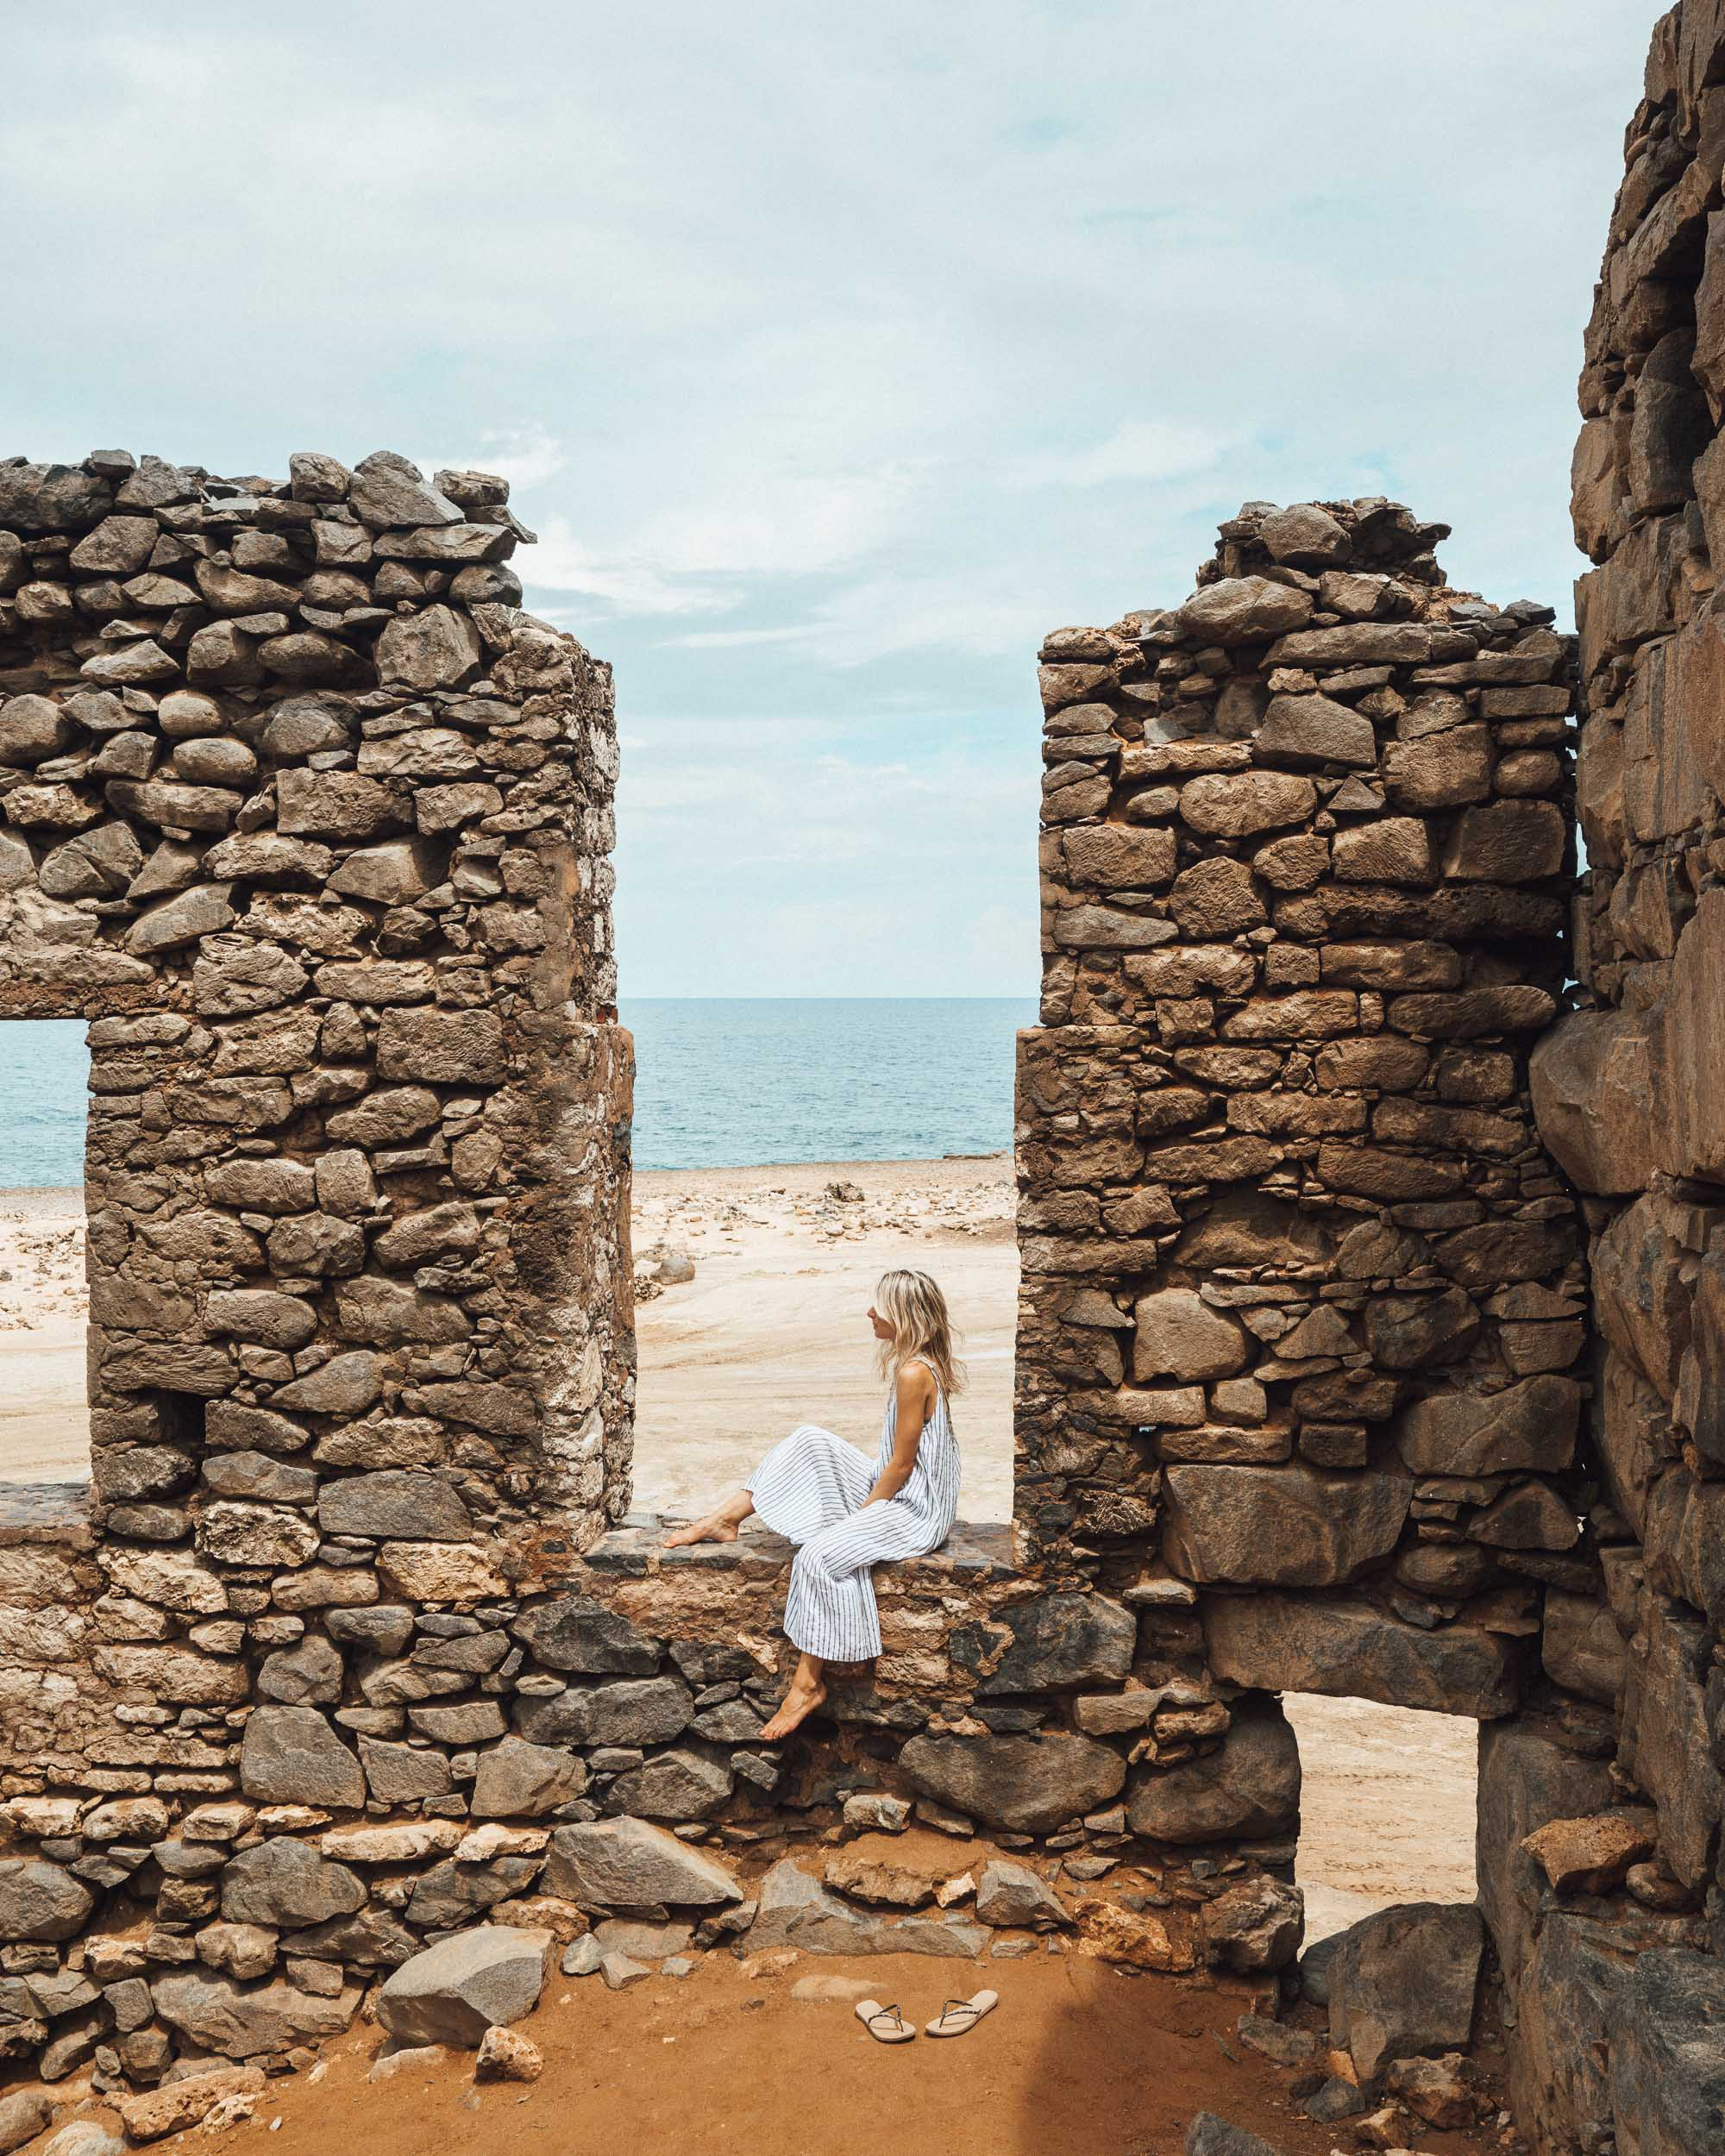 Bushiribana Ruins in Aruba via Find Us Lost